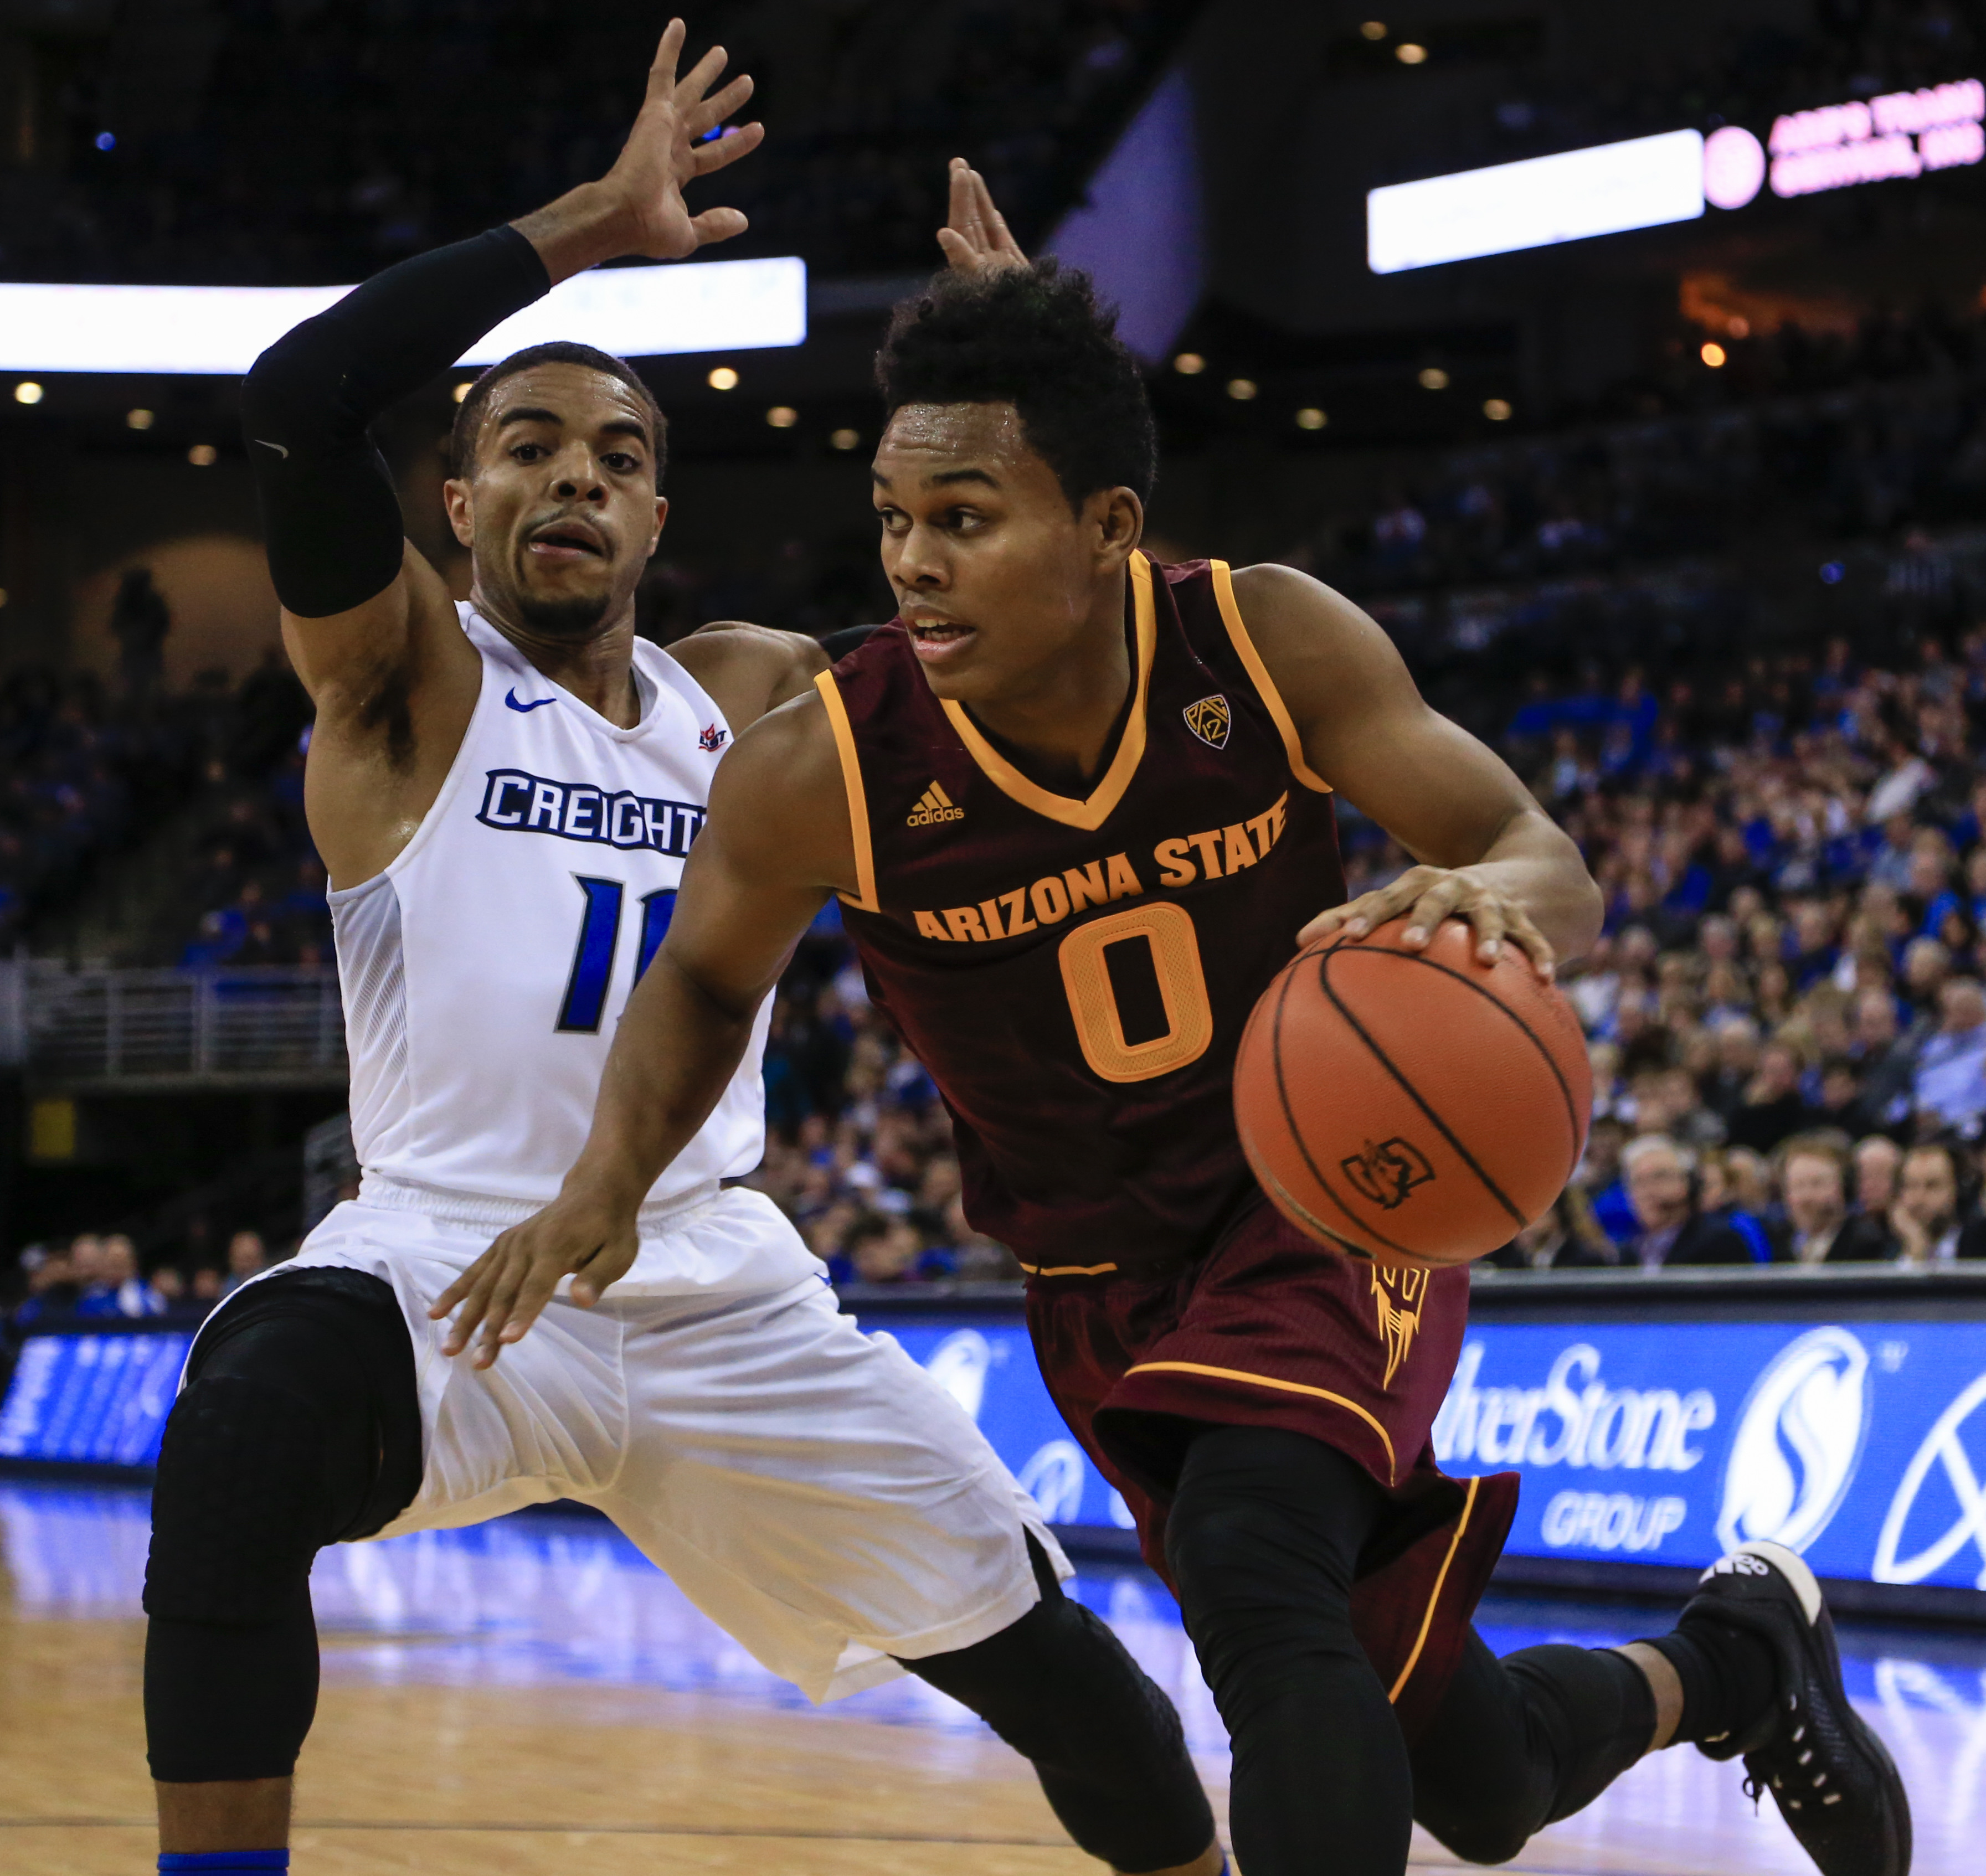 Arizona State's Tra Holder (0) drives past Creighton's Maurice Watson Jr. (10) during the first half of an NCAA college basketball game in Omaha, Neb., Wednesday, Dec. 2, 2015. (AP Photo/Nati Harnik)